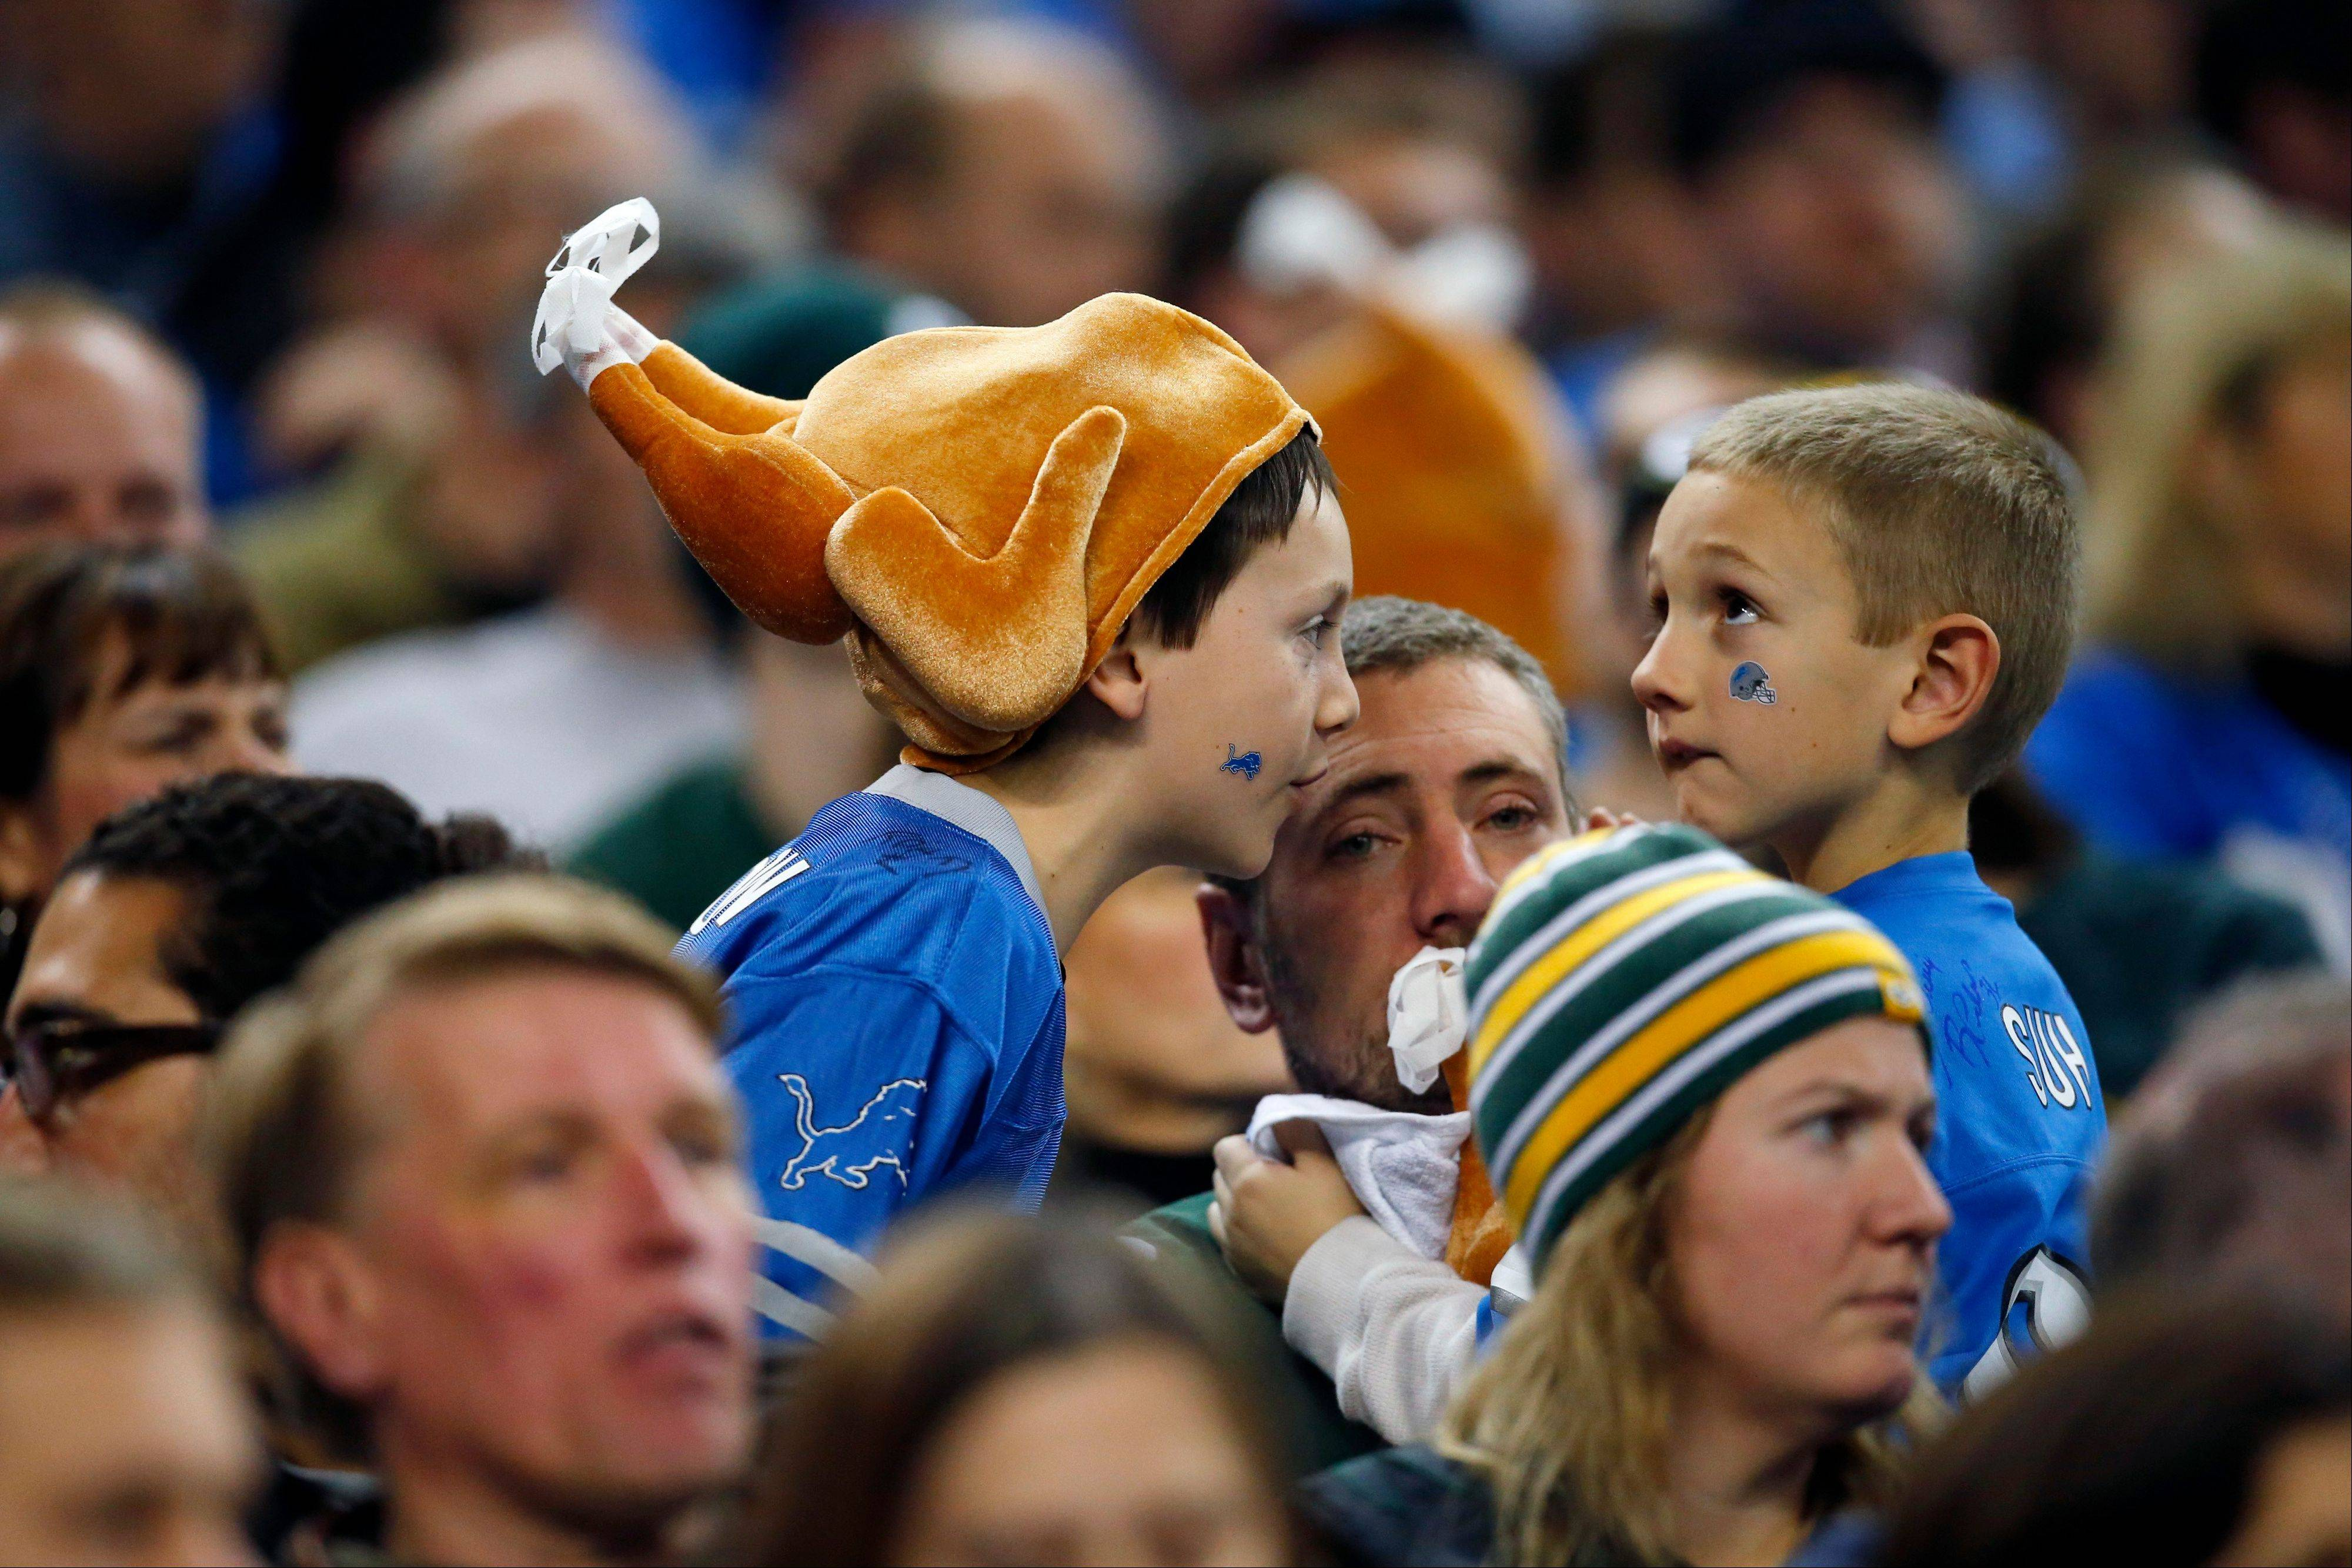 Bears fans are hoping the Lions play like the turkeys they sometimes can in the team's remaining four games.